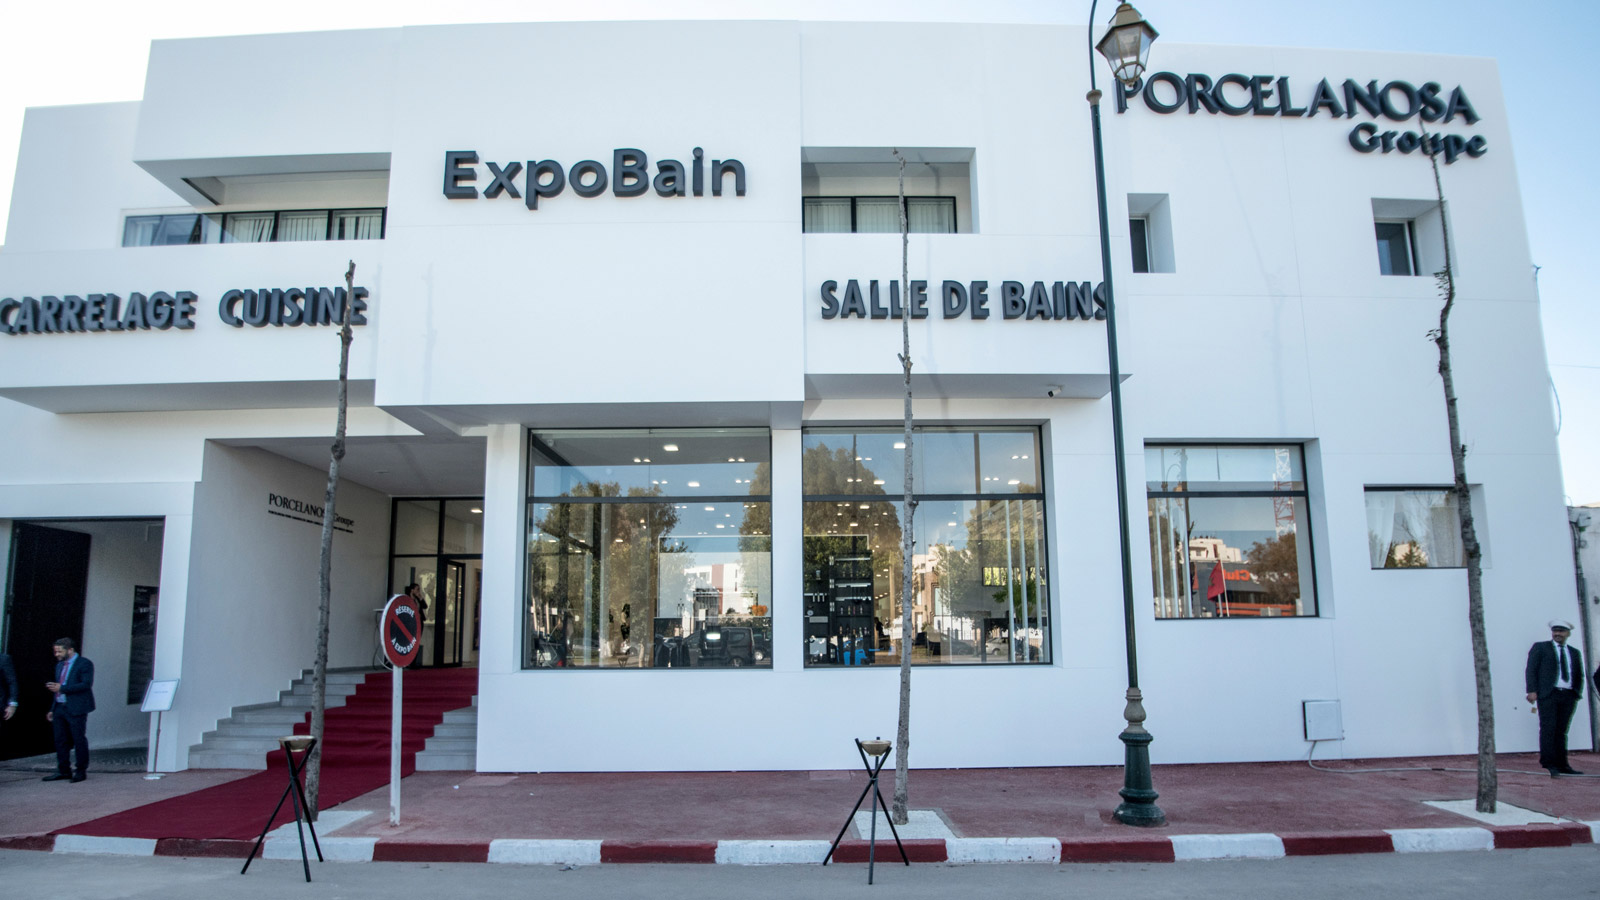 PORCELANOSA Grupo opens a 1400m² showroom in Rabat